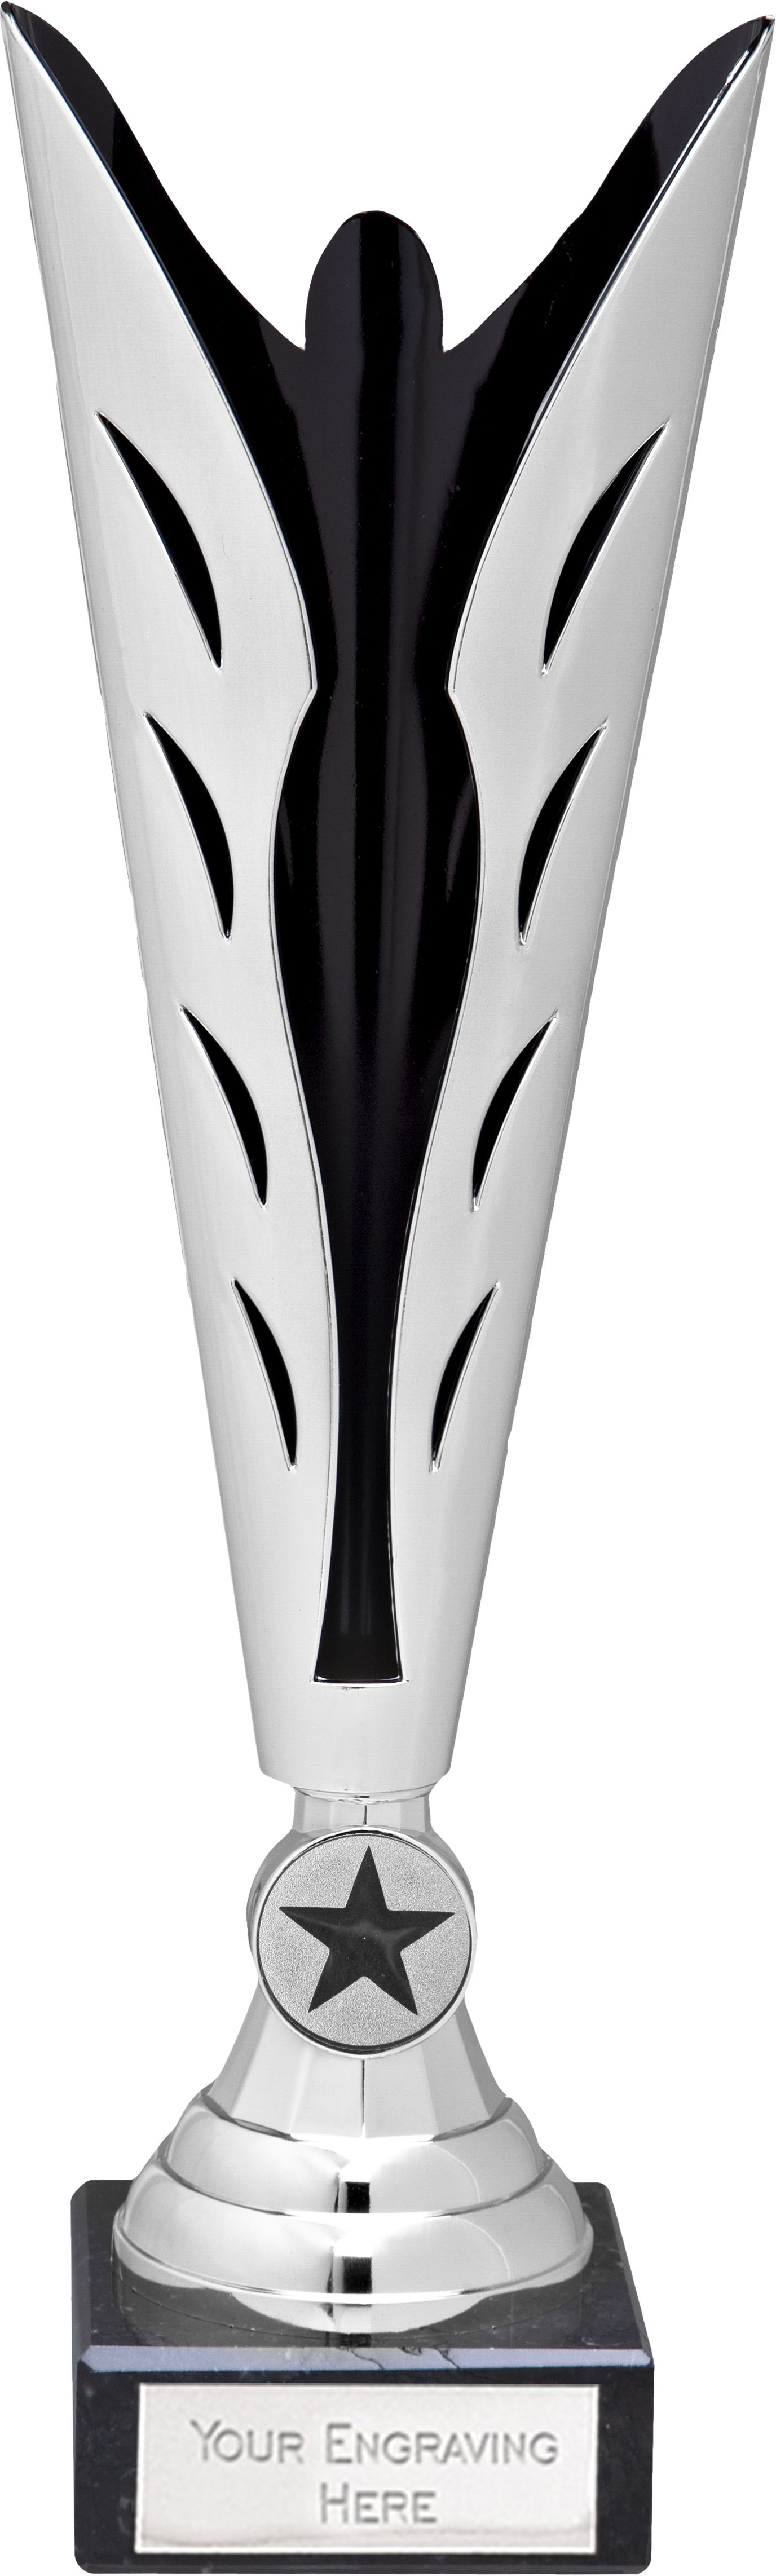 "Silver and Black Achievement Trophy Cup 30.5cm (12"")"